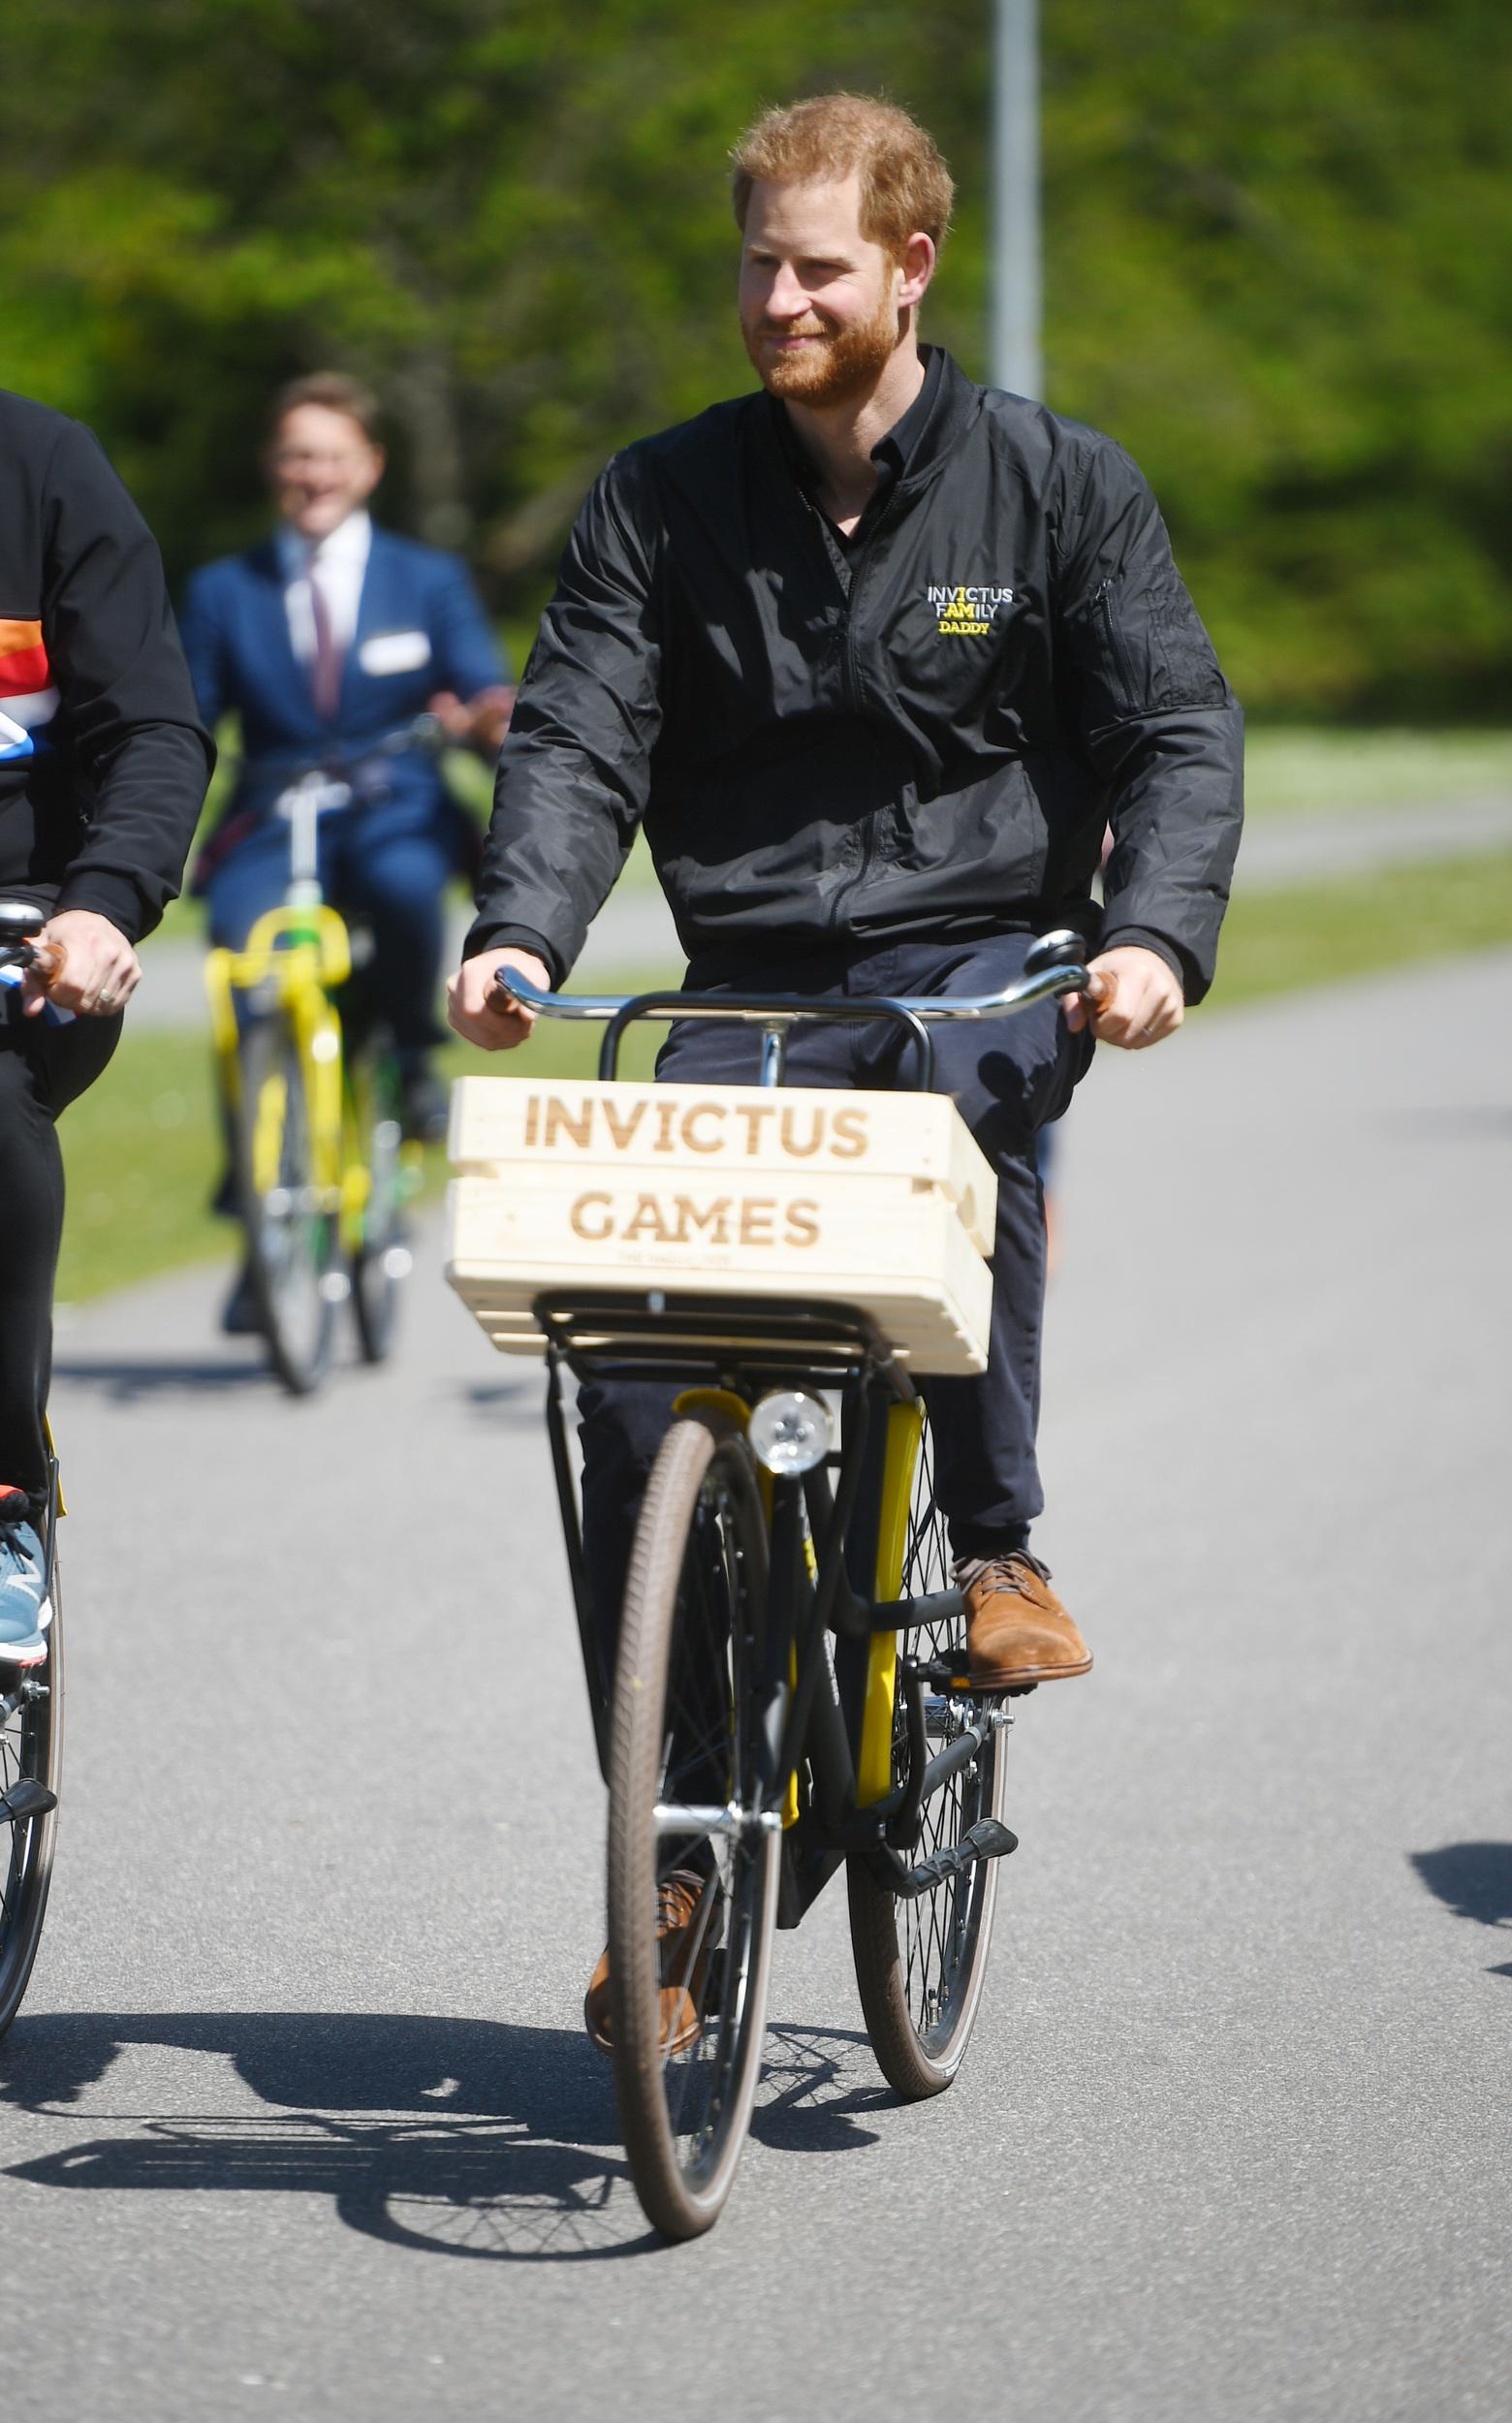 The Duke of Sussex rides a bicycle during events to launch the one year countdown to next year's Invictus Games in the Hague, in the Netherlands. (Photo by Kirsty O'Connor/PA Images via Getty Images)